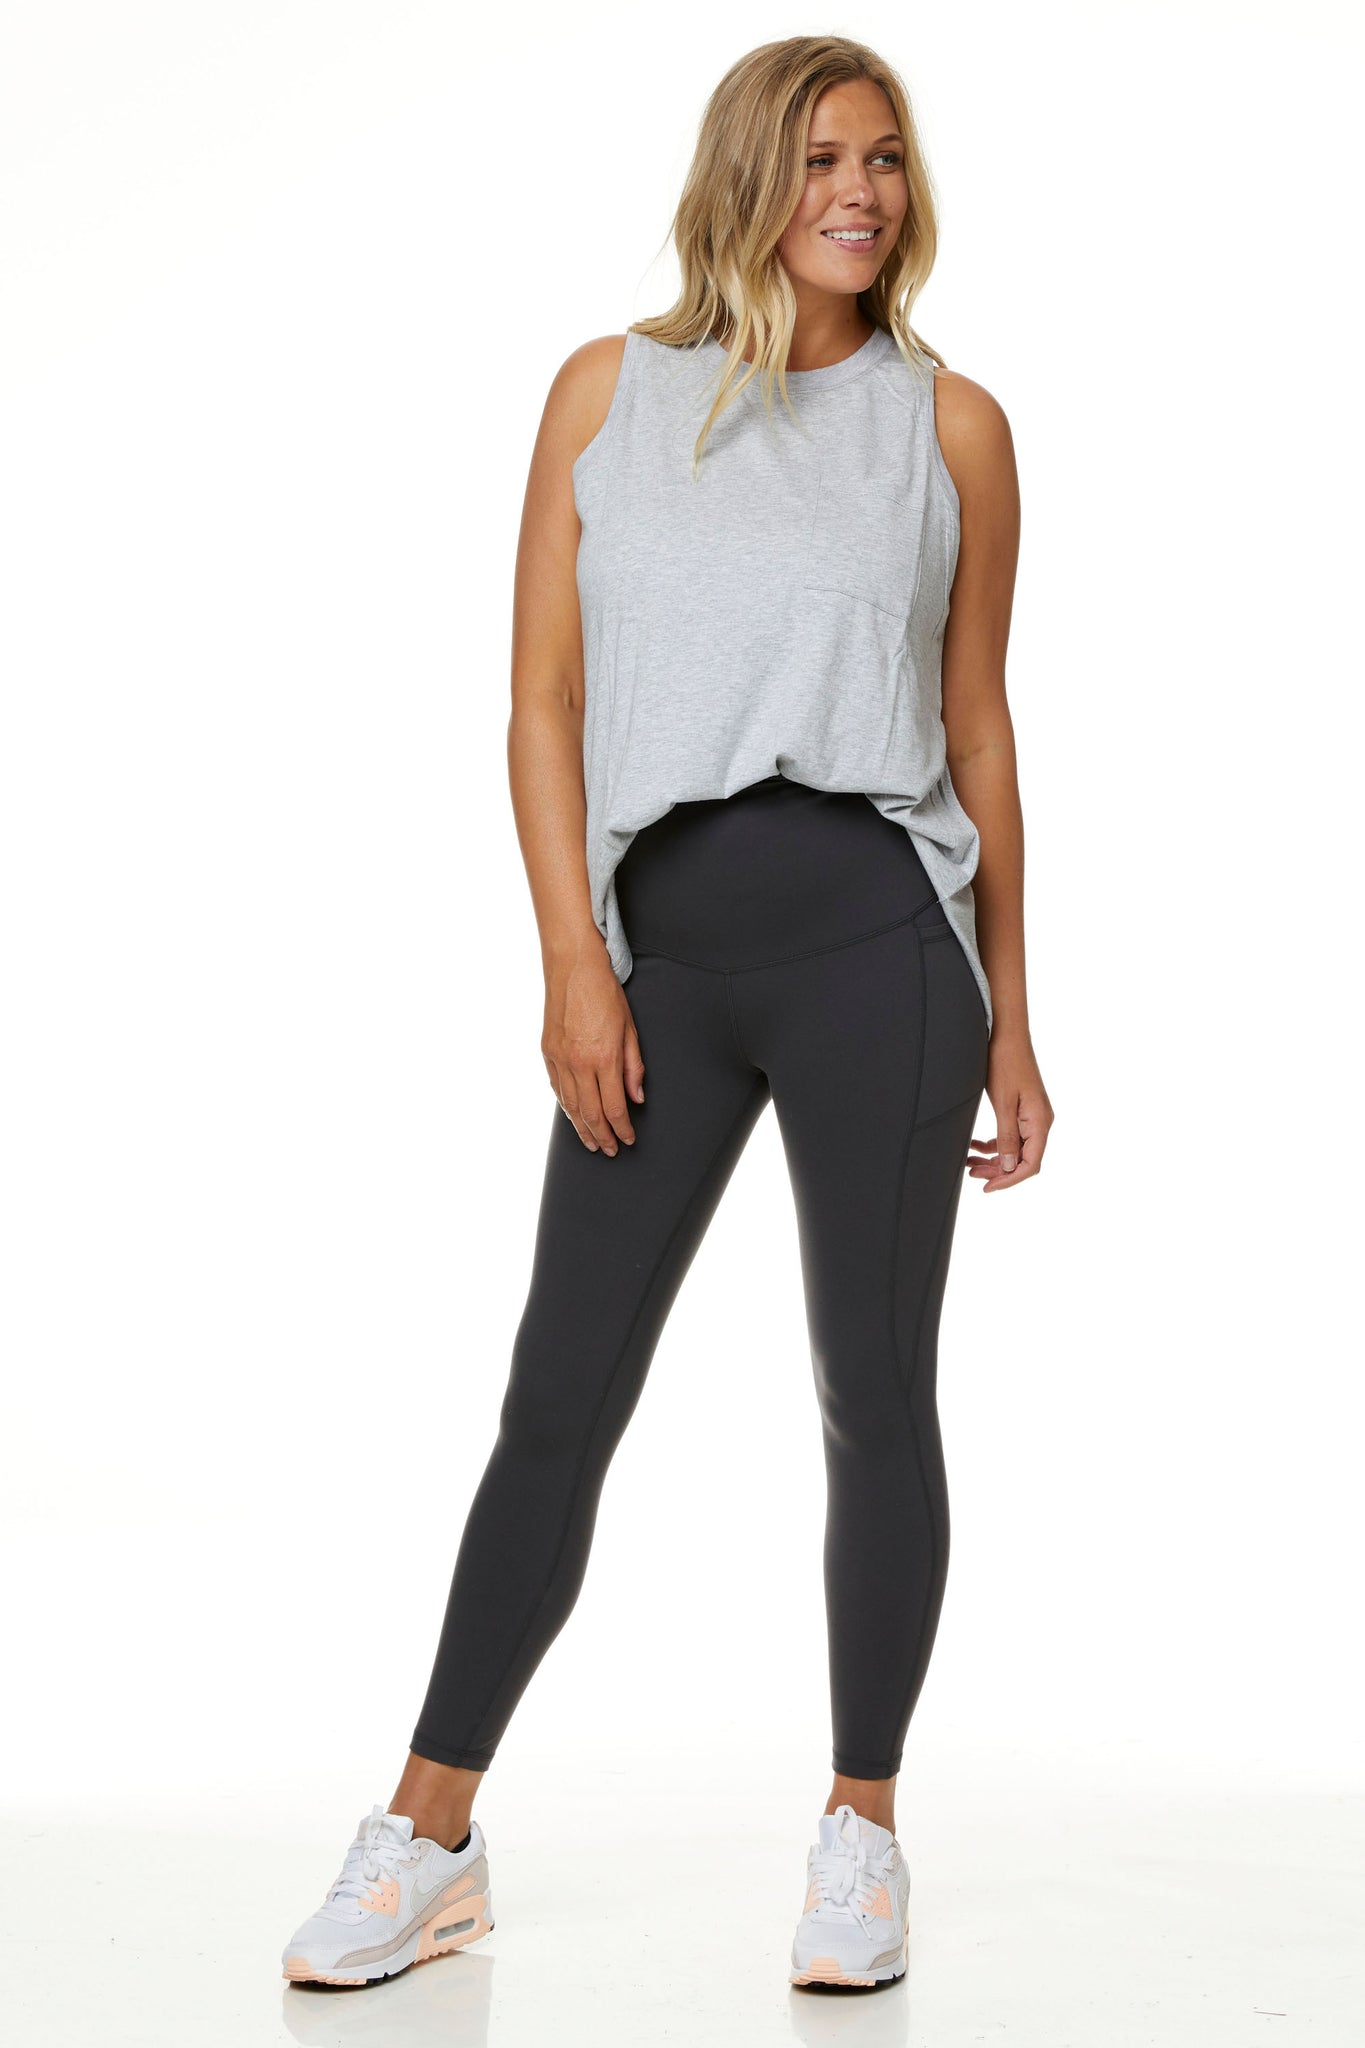 Maternity Leggings Australia 8